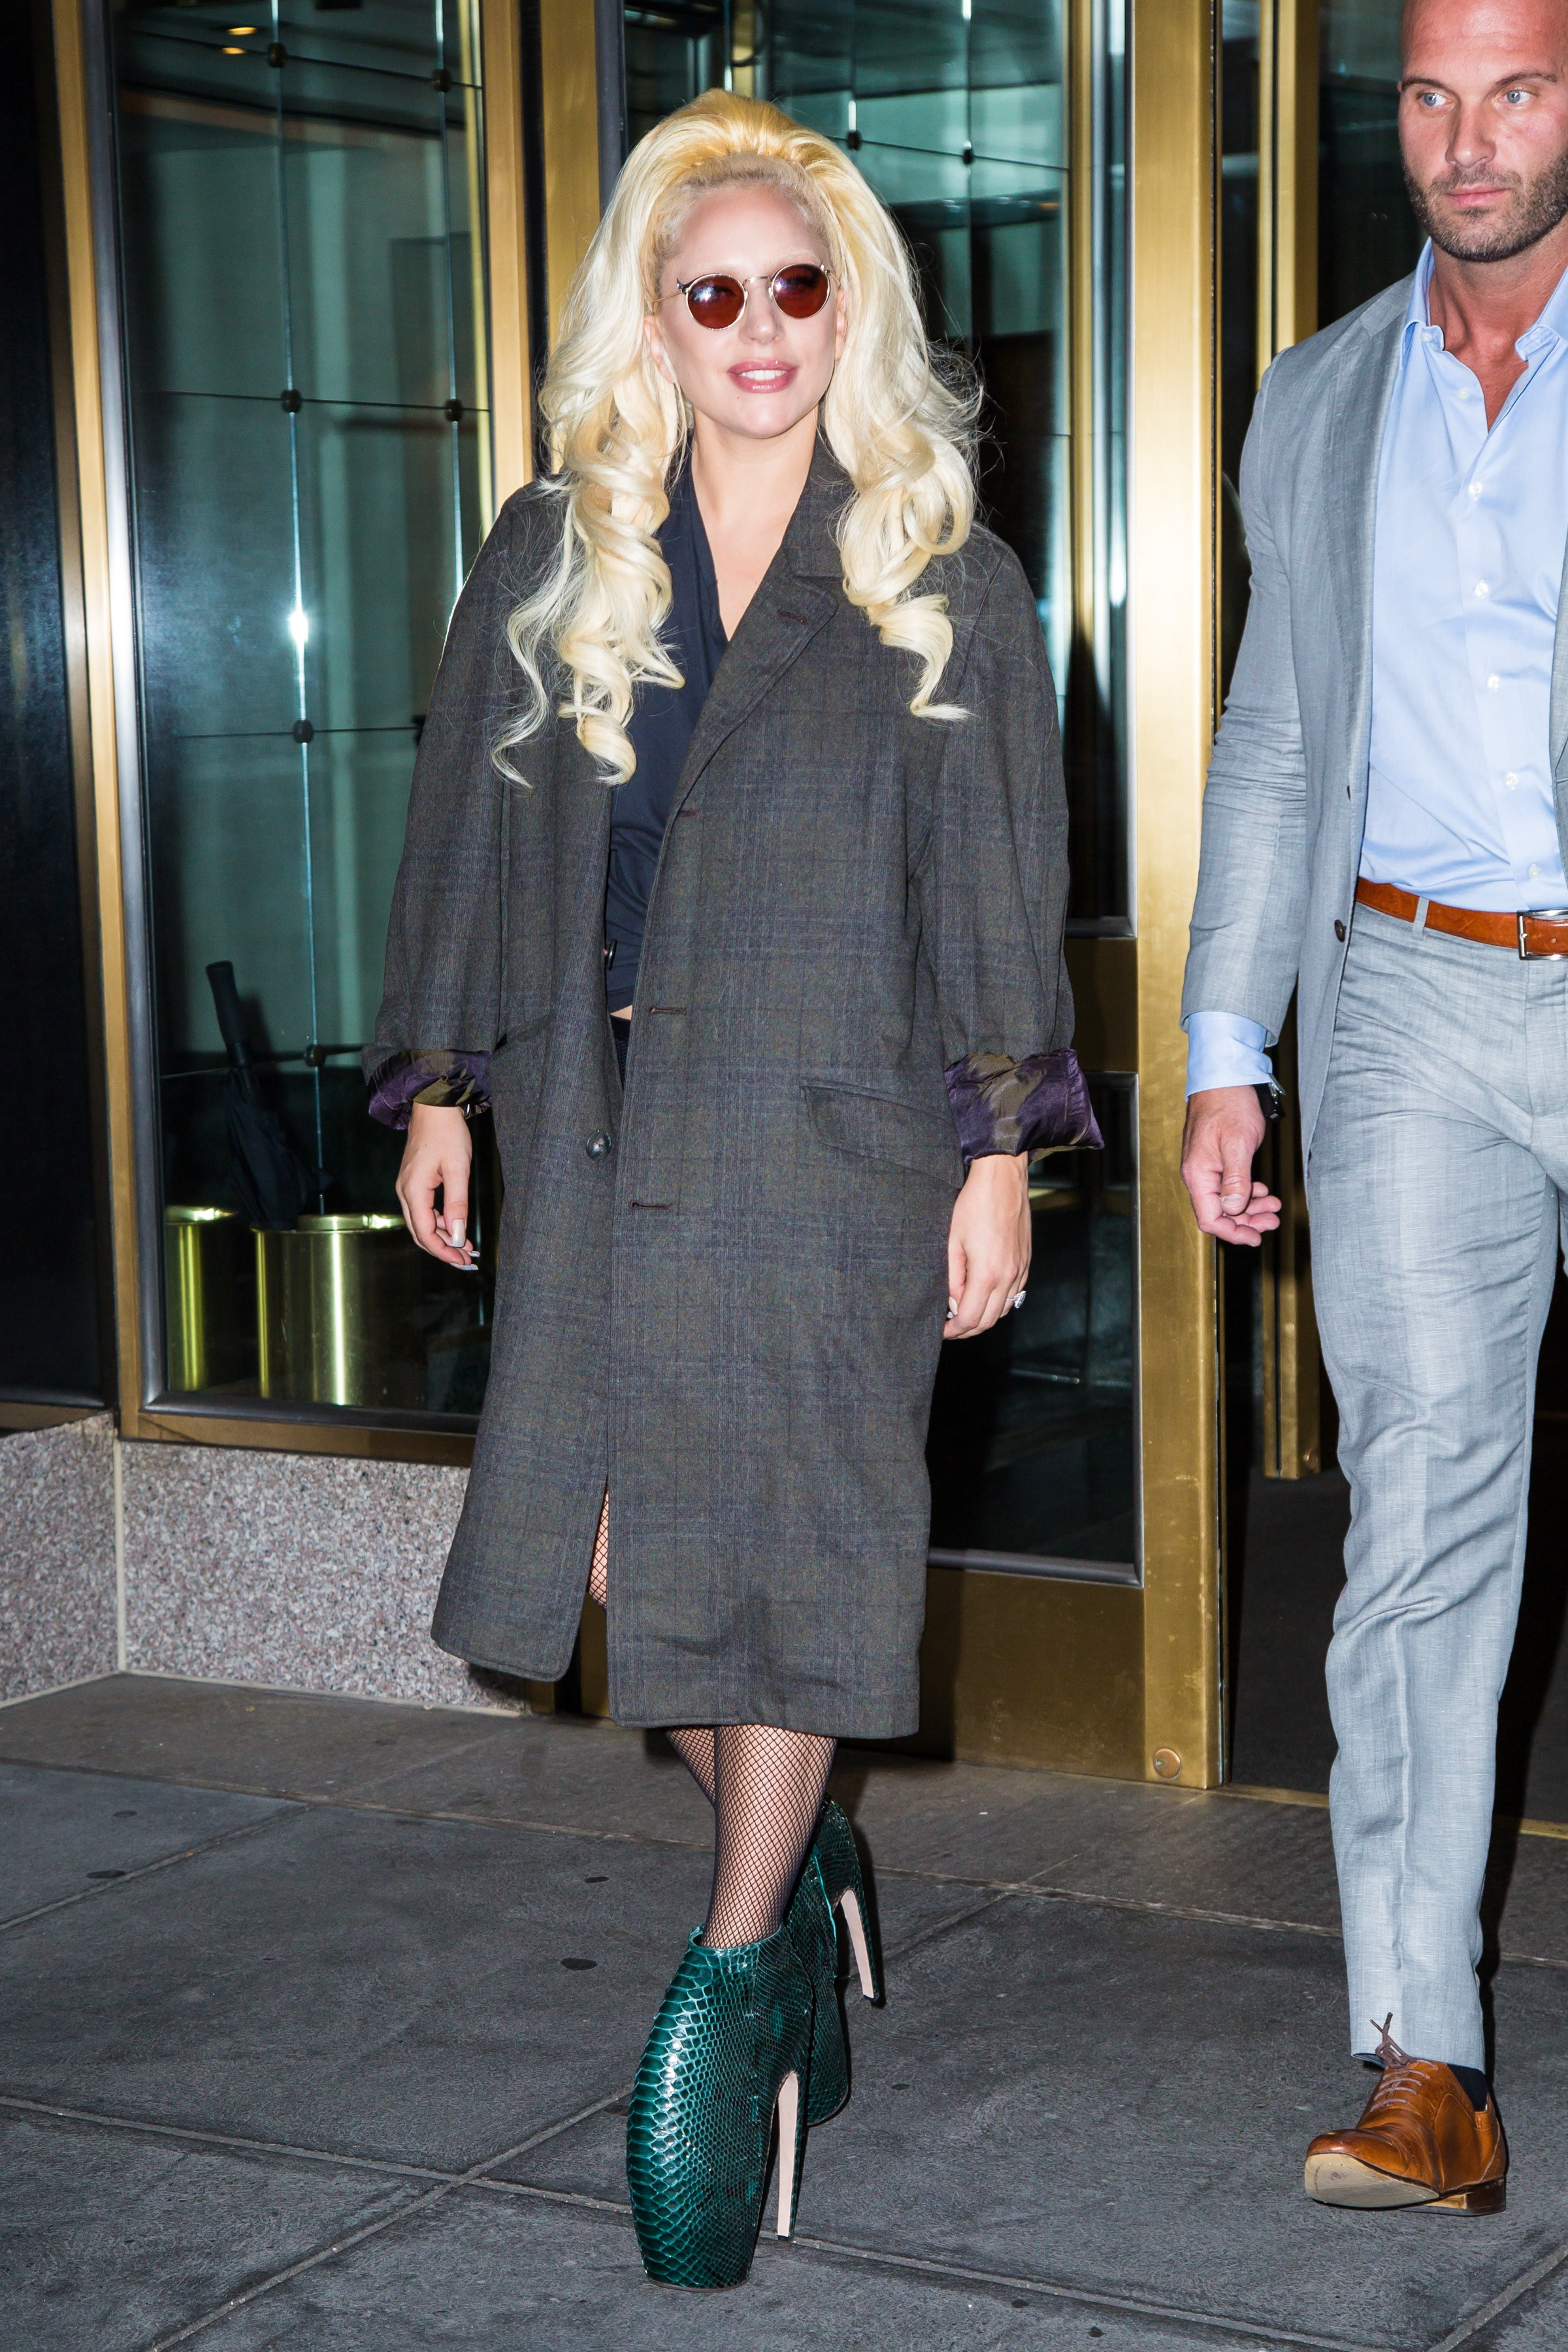 7-26-15-Leaving-her-apartment-in-NYC-001